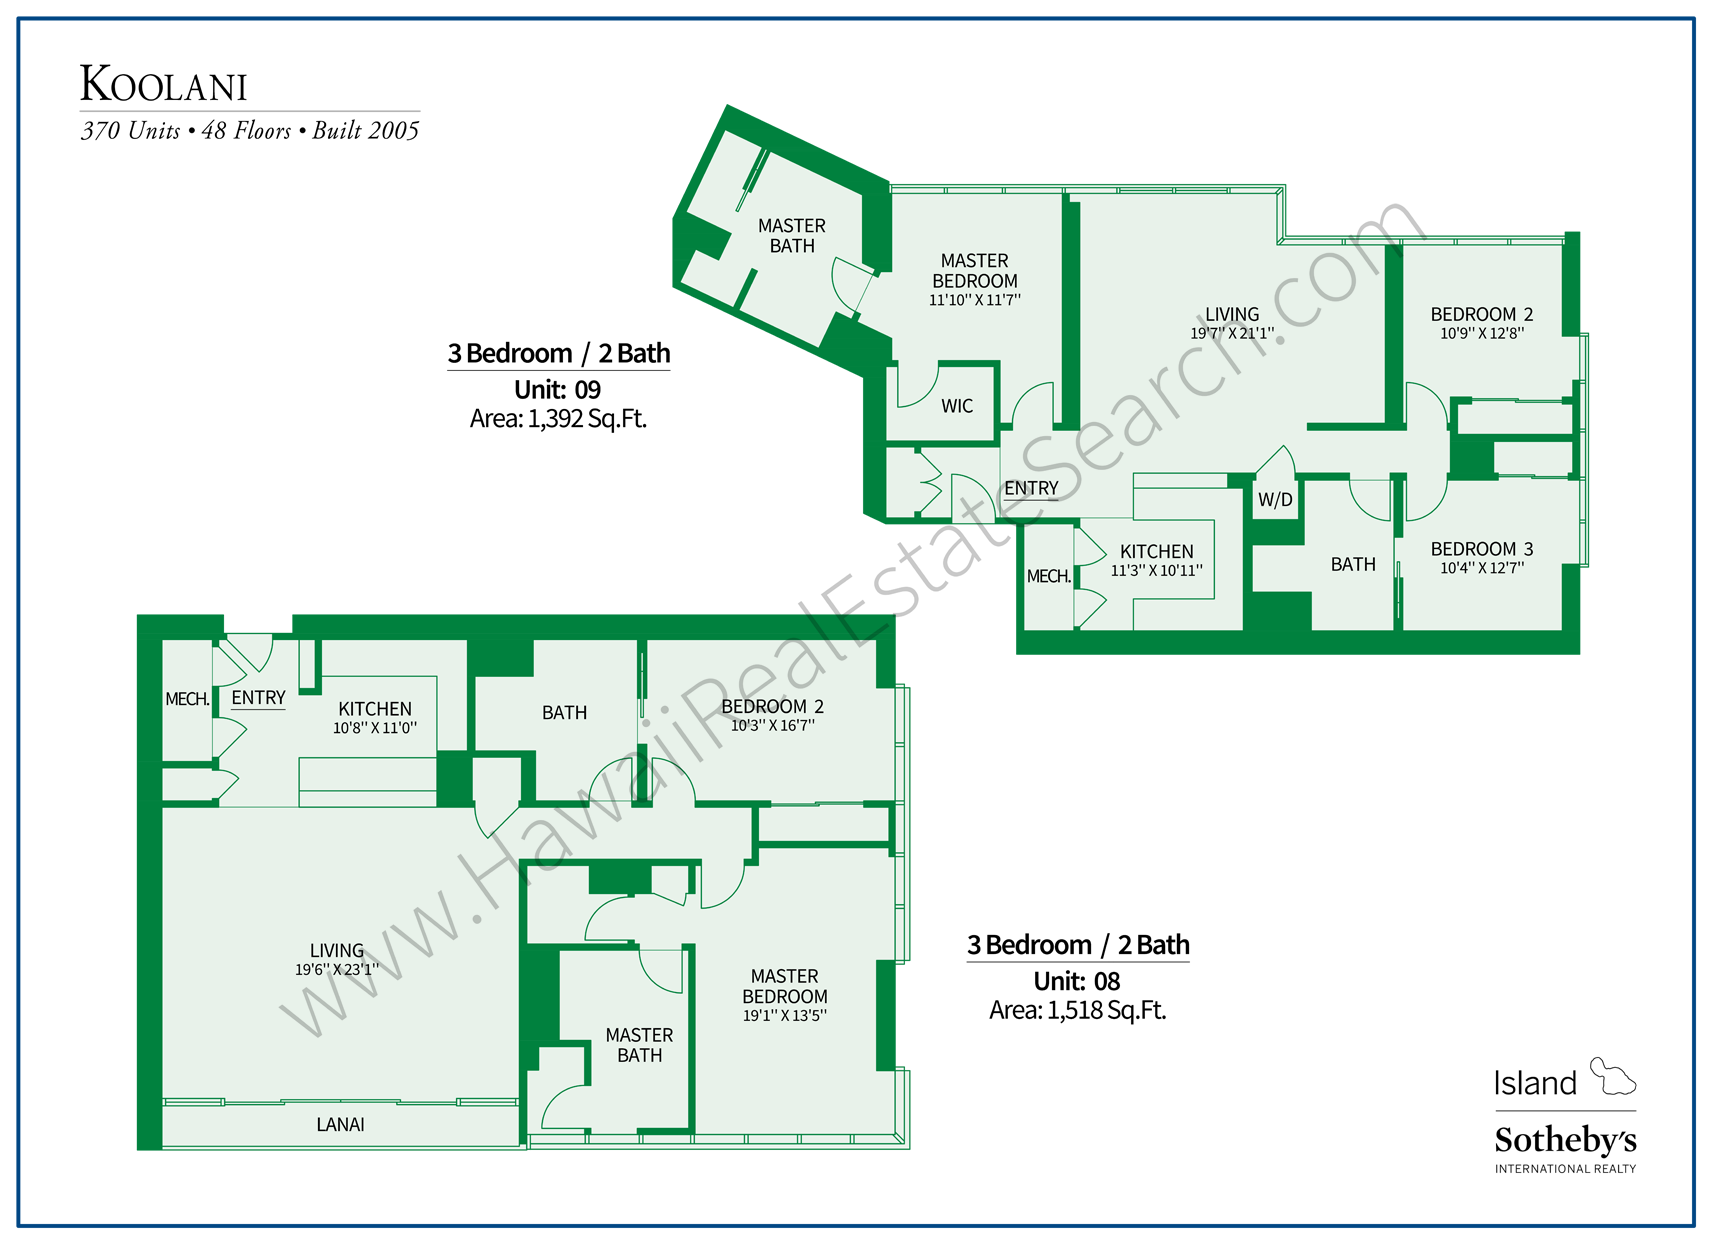 Koolani Floor Plans